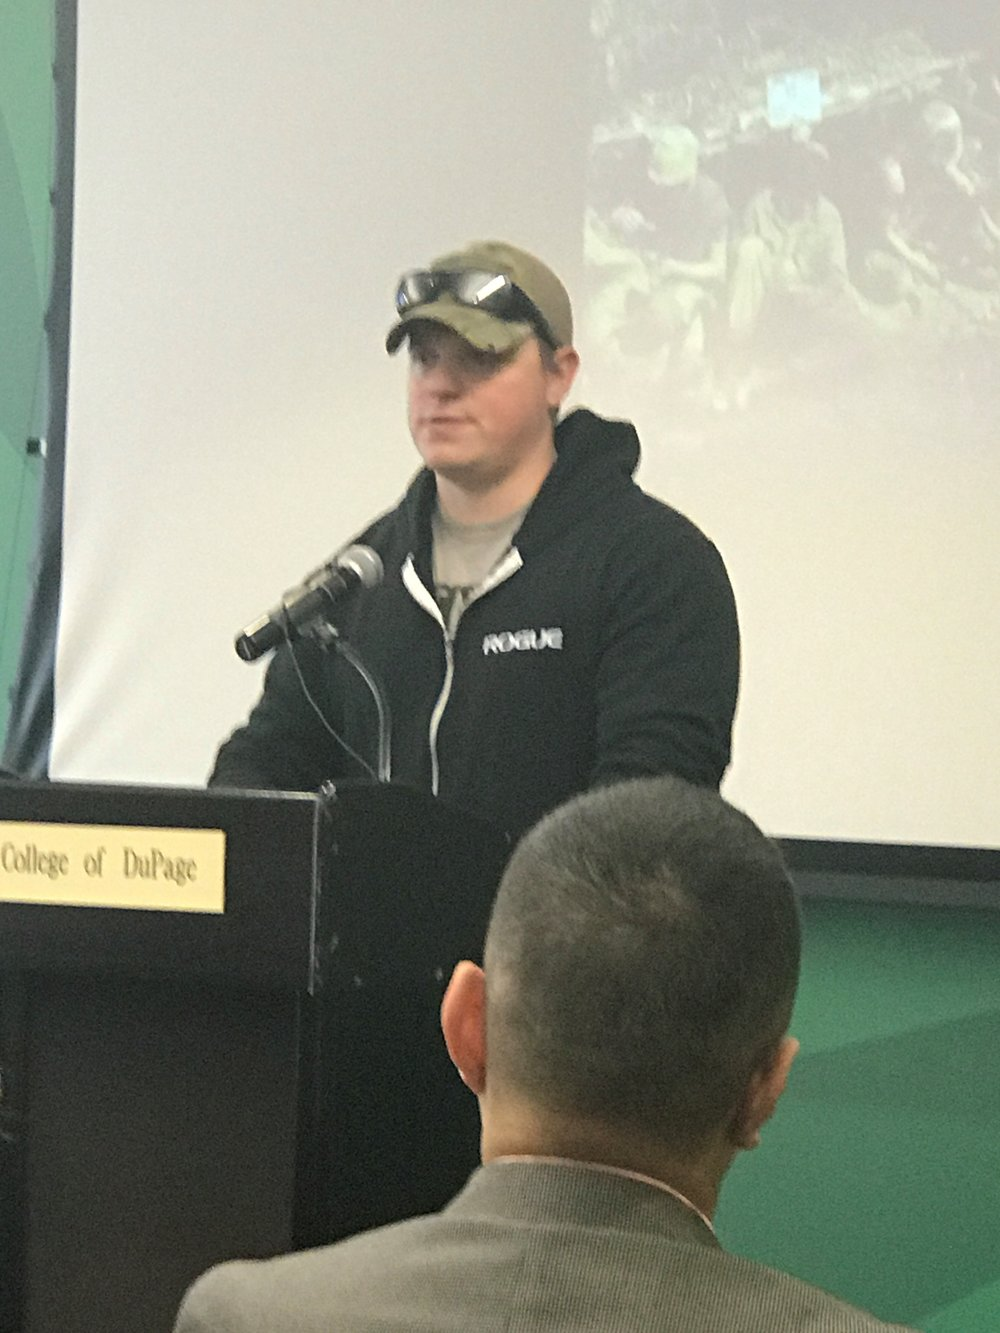 College of DuPage student and veteran Rich Ryan recounted his memory of service during the 2017 Veterans Day Read-In